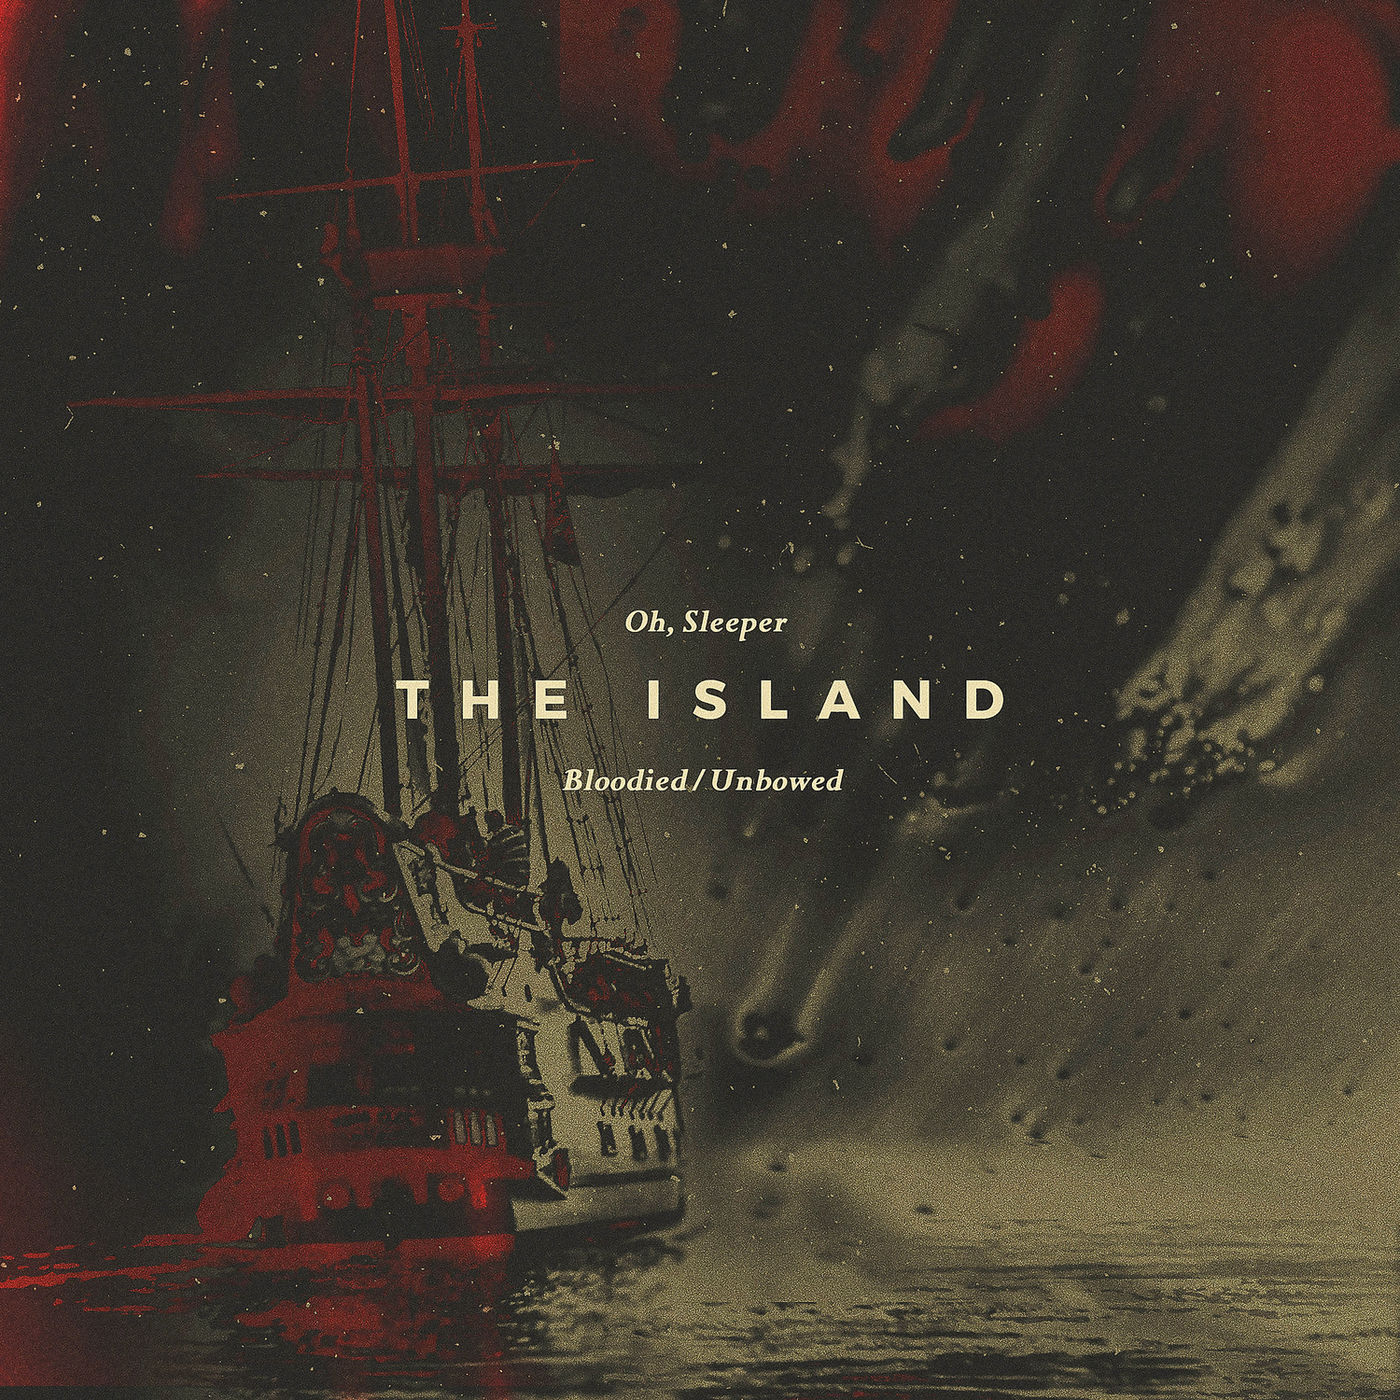 Oh, Sleeper - The Island [Single] (2019)